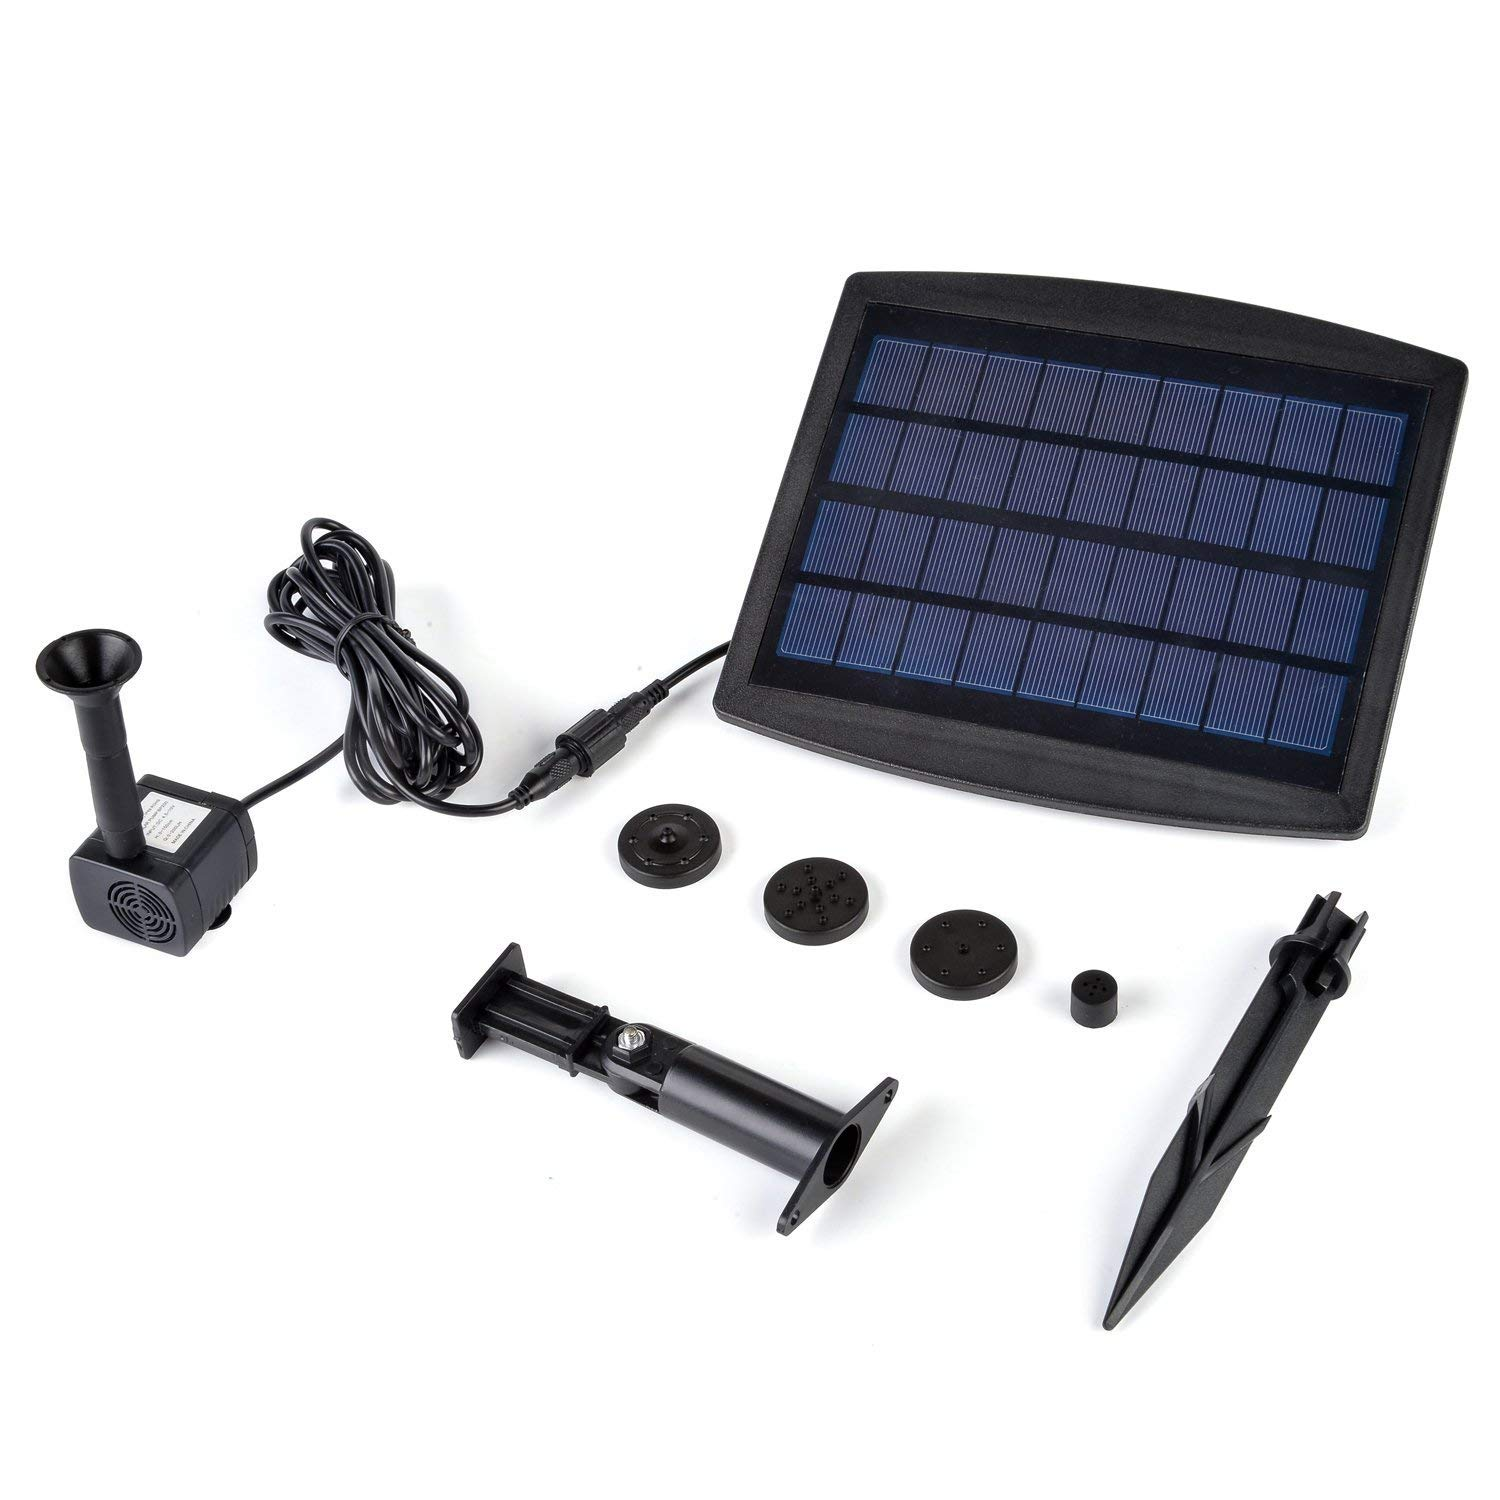 Weanas 9V 2.5W Solar Fountain Pump with Built-in Battery Backup, Free Standing Solar Powered Bird Bath Water Fountain Pump for Garden Fountain Pond Pool Outdoor